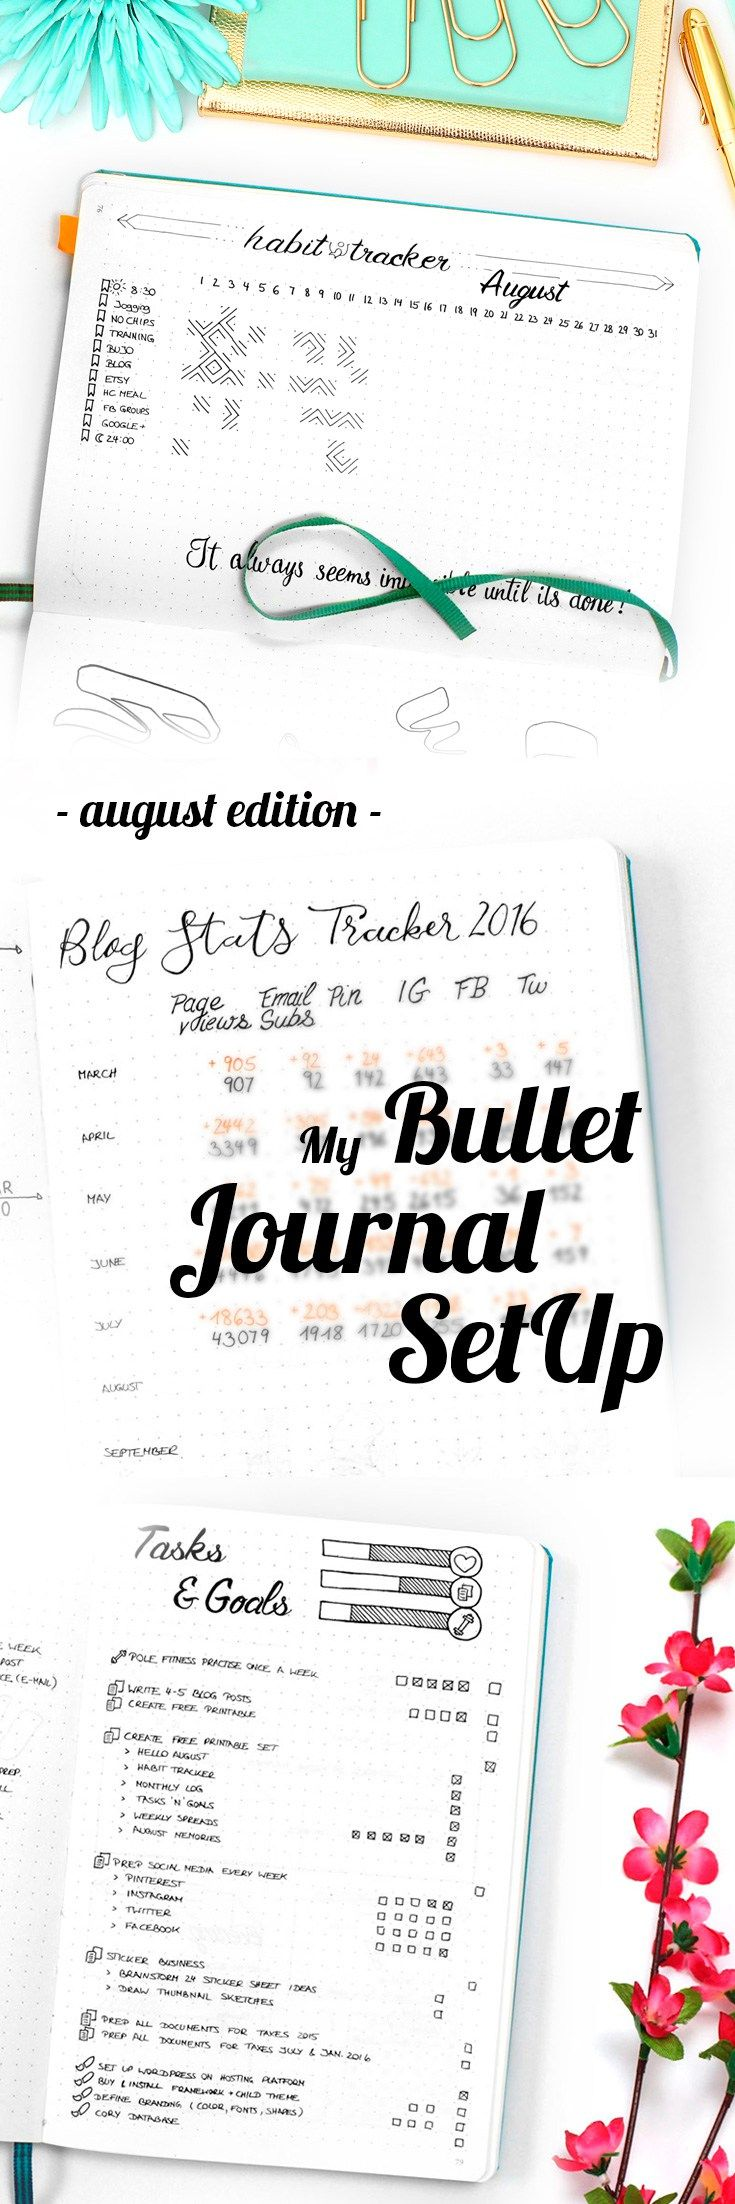 My August Bullet Journal Setup 2016. Including Habit Tracker, Calendex, Monthly…